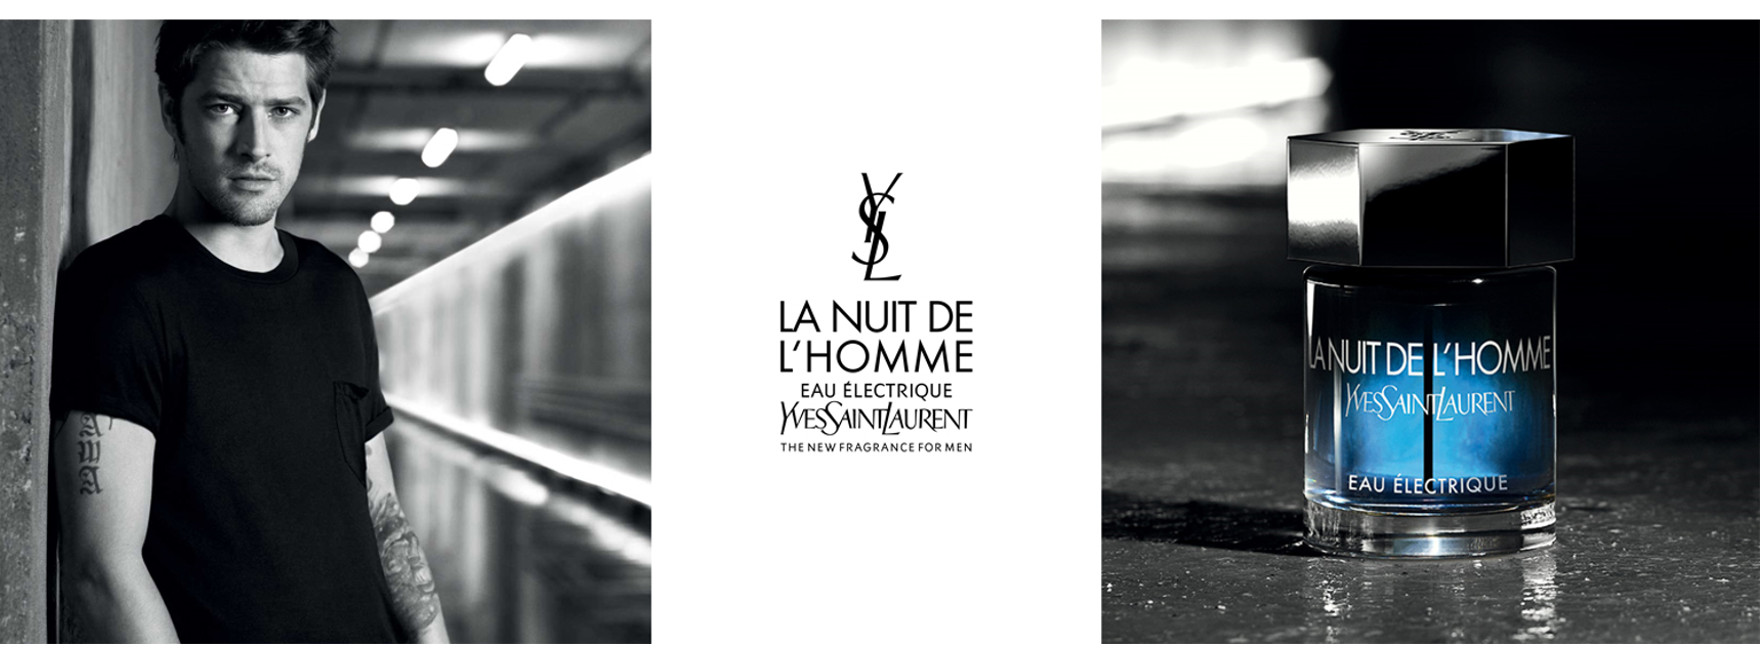 https://twoja-perfumeria.com/wody-toaletowe/2118-ysl-yves-saint-laurent-la-nuit-de-l-homme-eau-electrique-woda-toaletowa-100-ml-tester.html?search_query=ysl&results=223